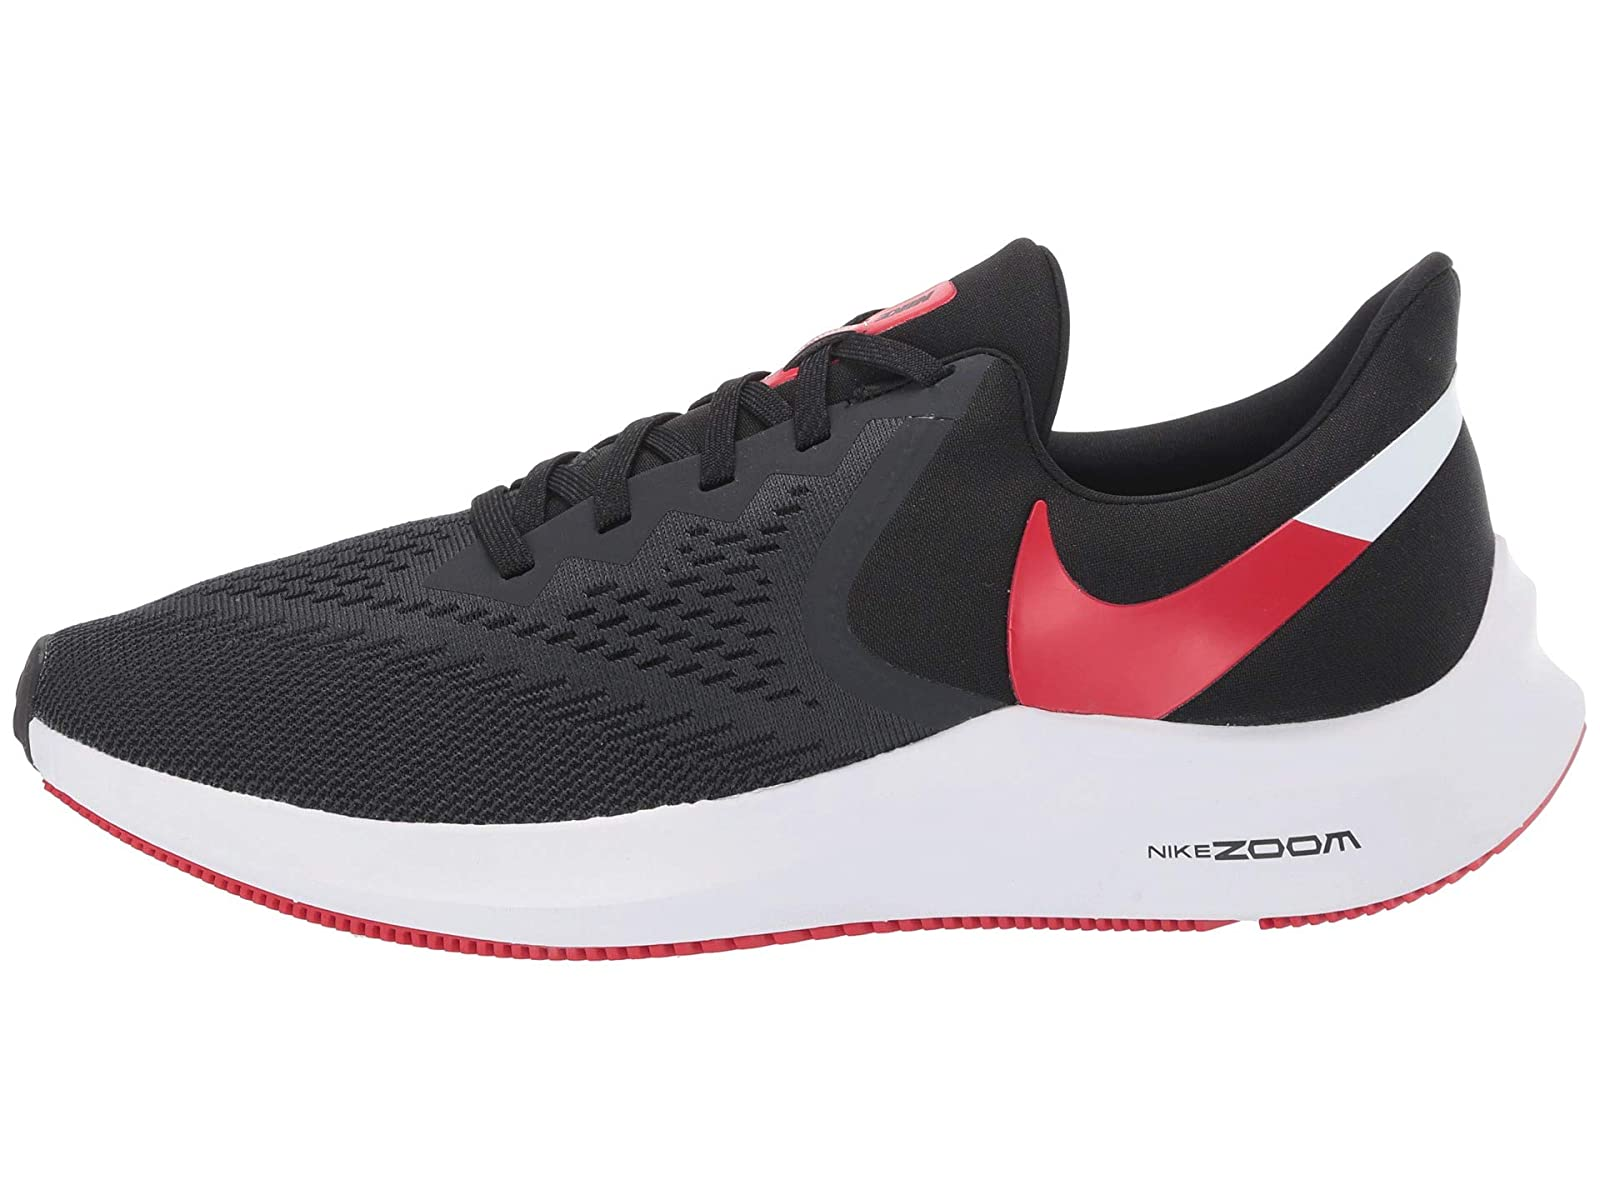 Man-039-s-Sneakers-amp-Athletic-Shoes-Nike-Air-Zoom-Winflo-6 thumbnail 12